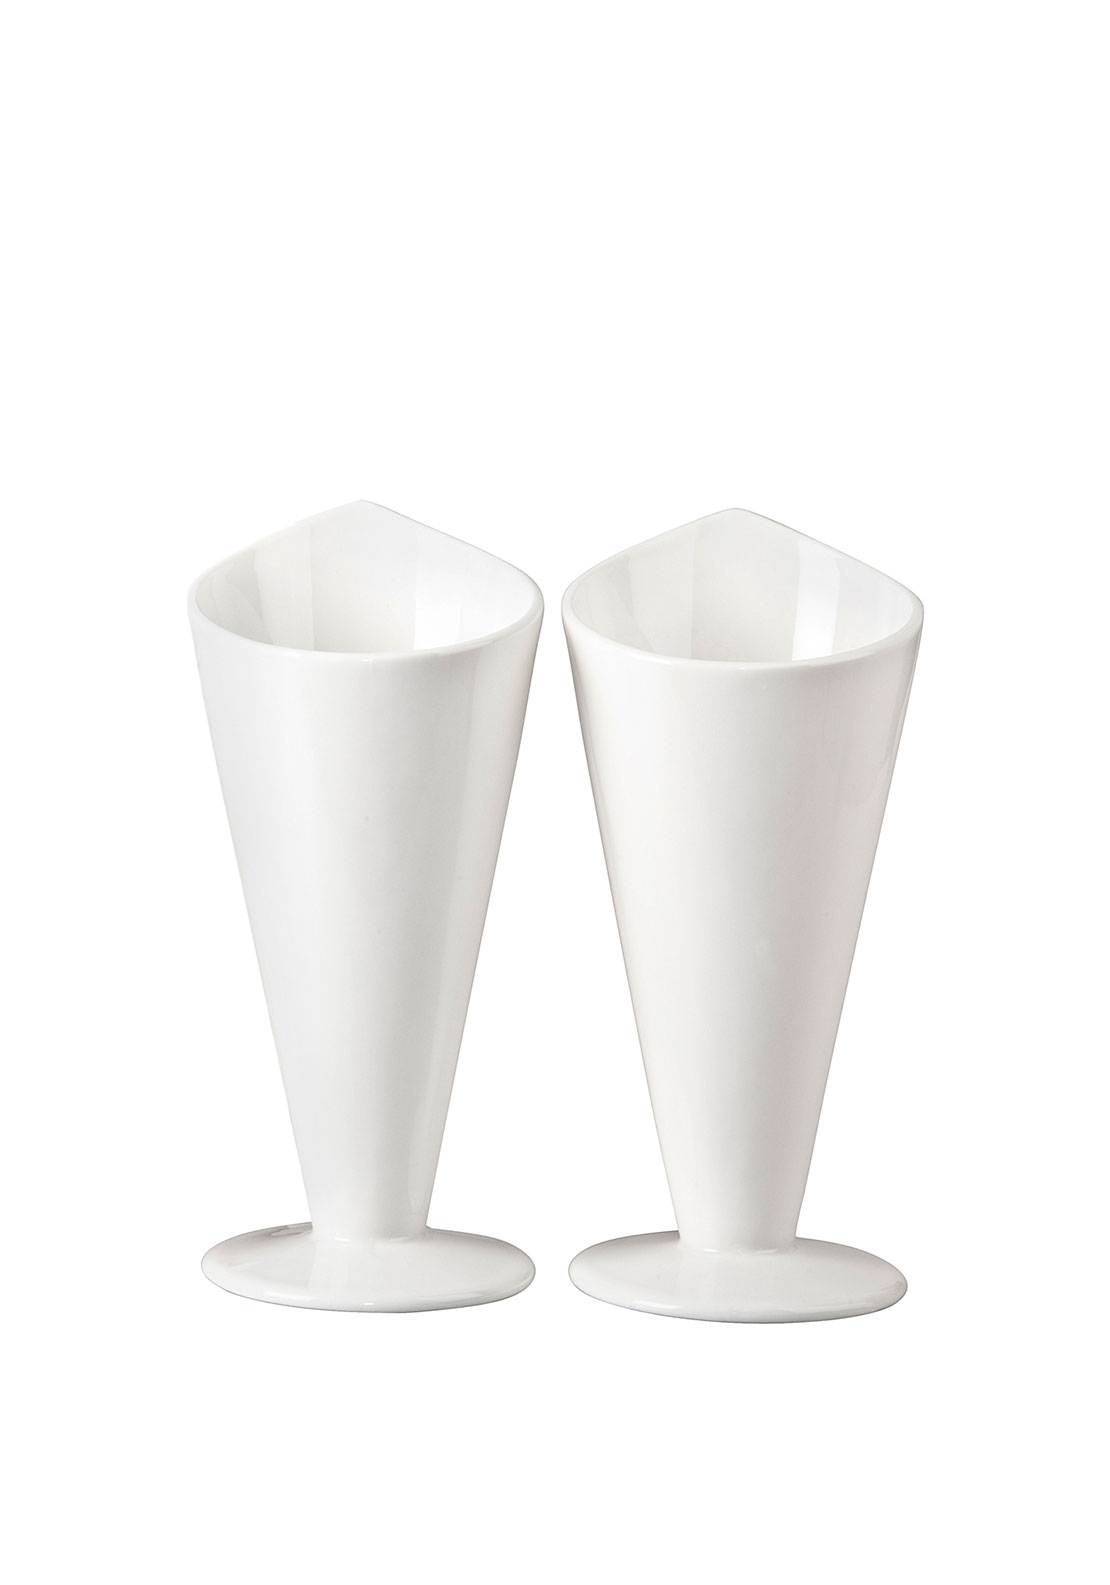 Denby Gastro James Martin 2 Piece Chip Cone Kit